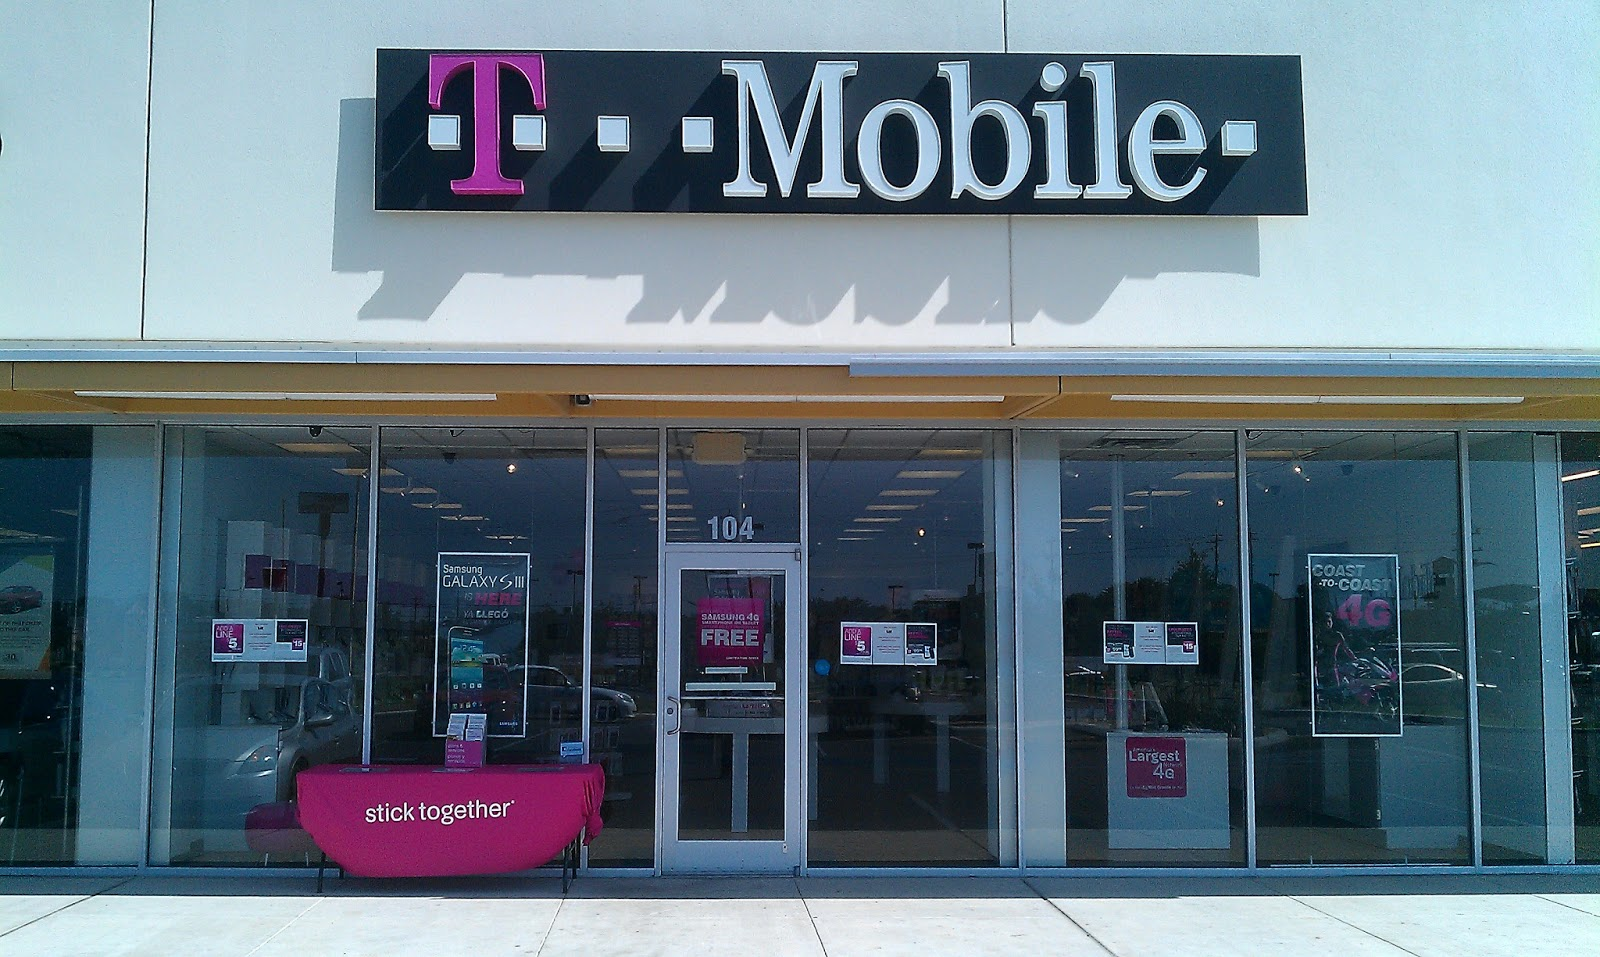 The network has a wide reach in the U.S. There are a number of wireless plans from the provider, most featuring voice calling, data, and text messaging. Deals or discounts are often available, depending on the package. Visit a T-Mobile store near you to see the latest cell phones and other products.